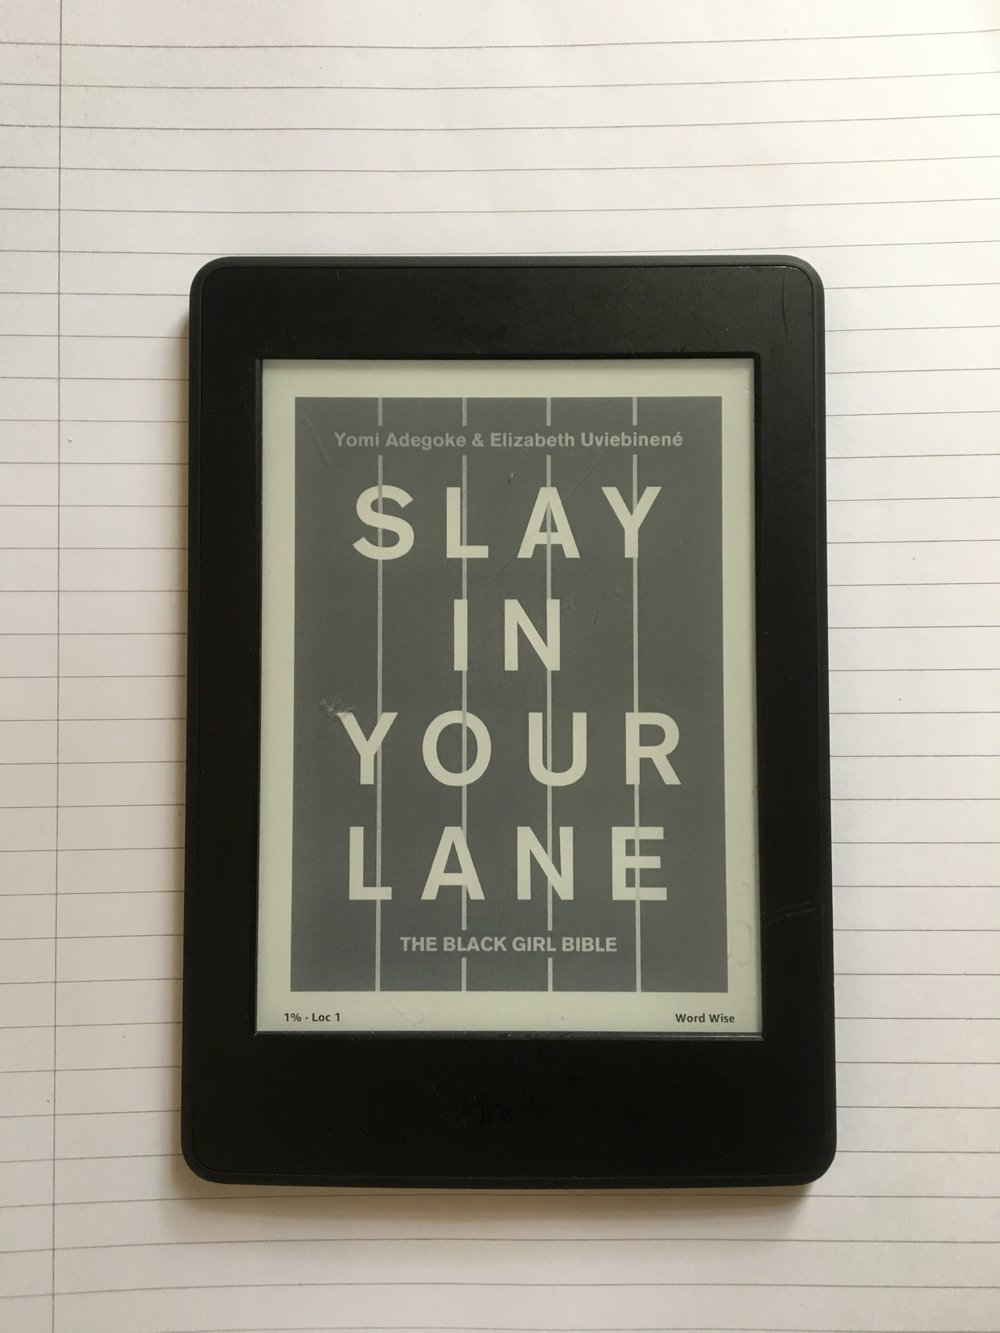 my kindle copy of  Slay in Your Lane